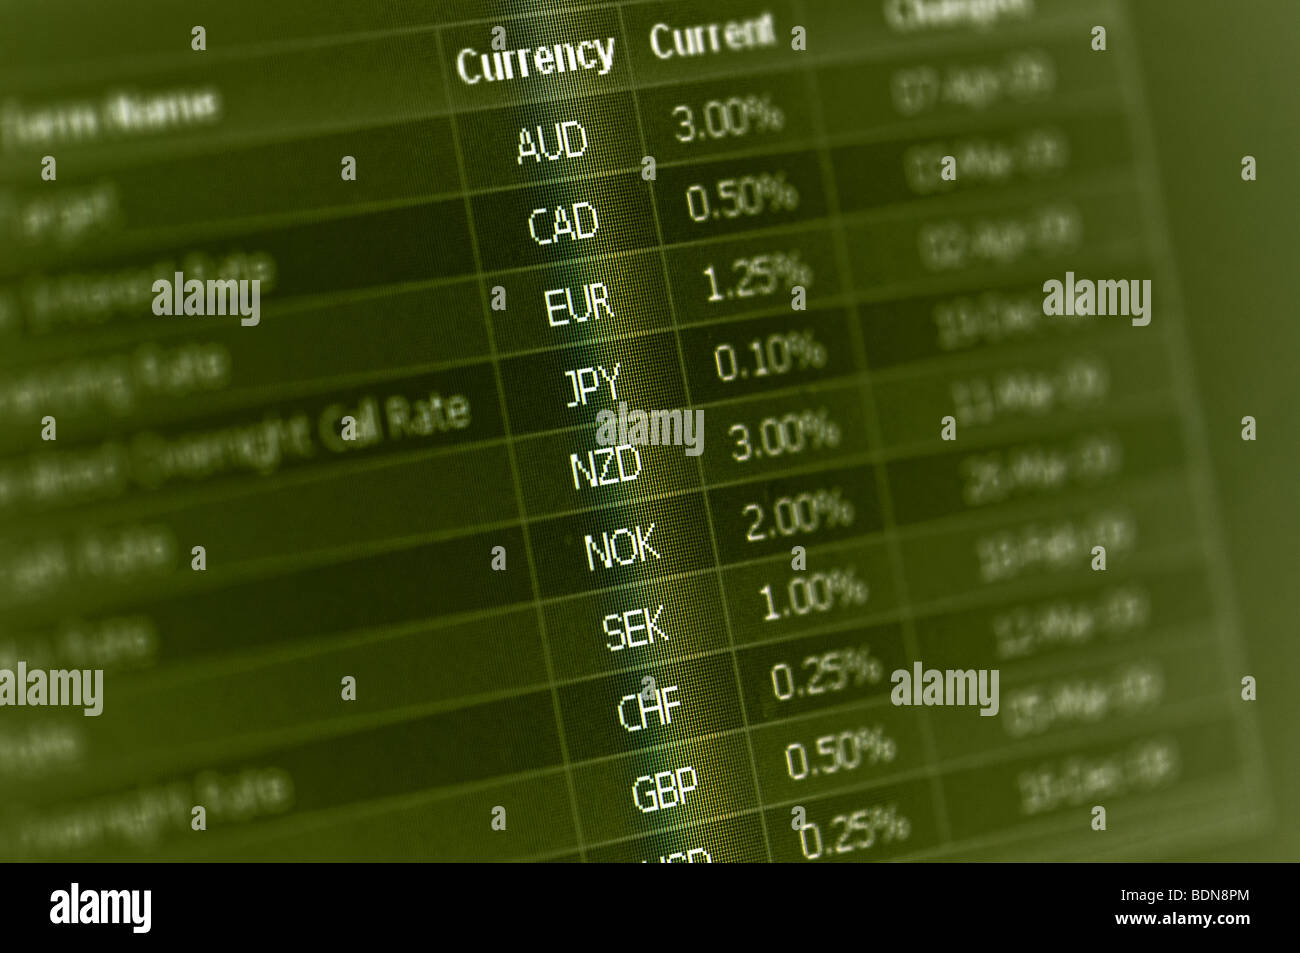 financial market currency interest rates on monitor - Stock Image